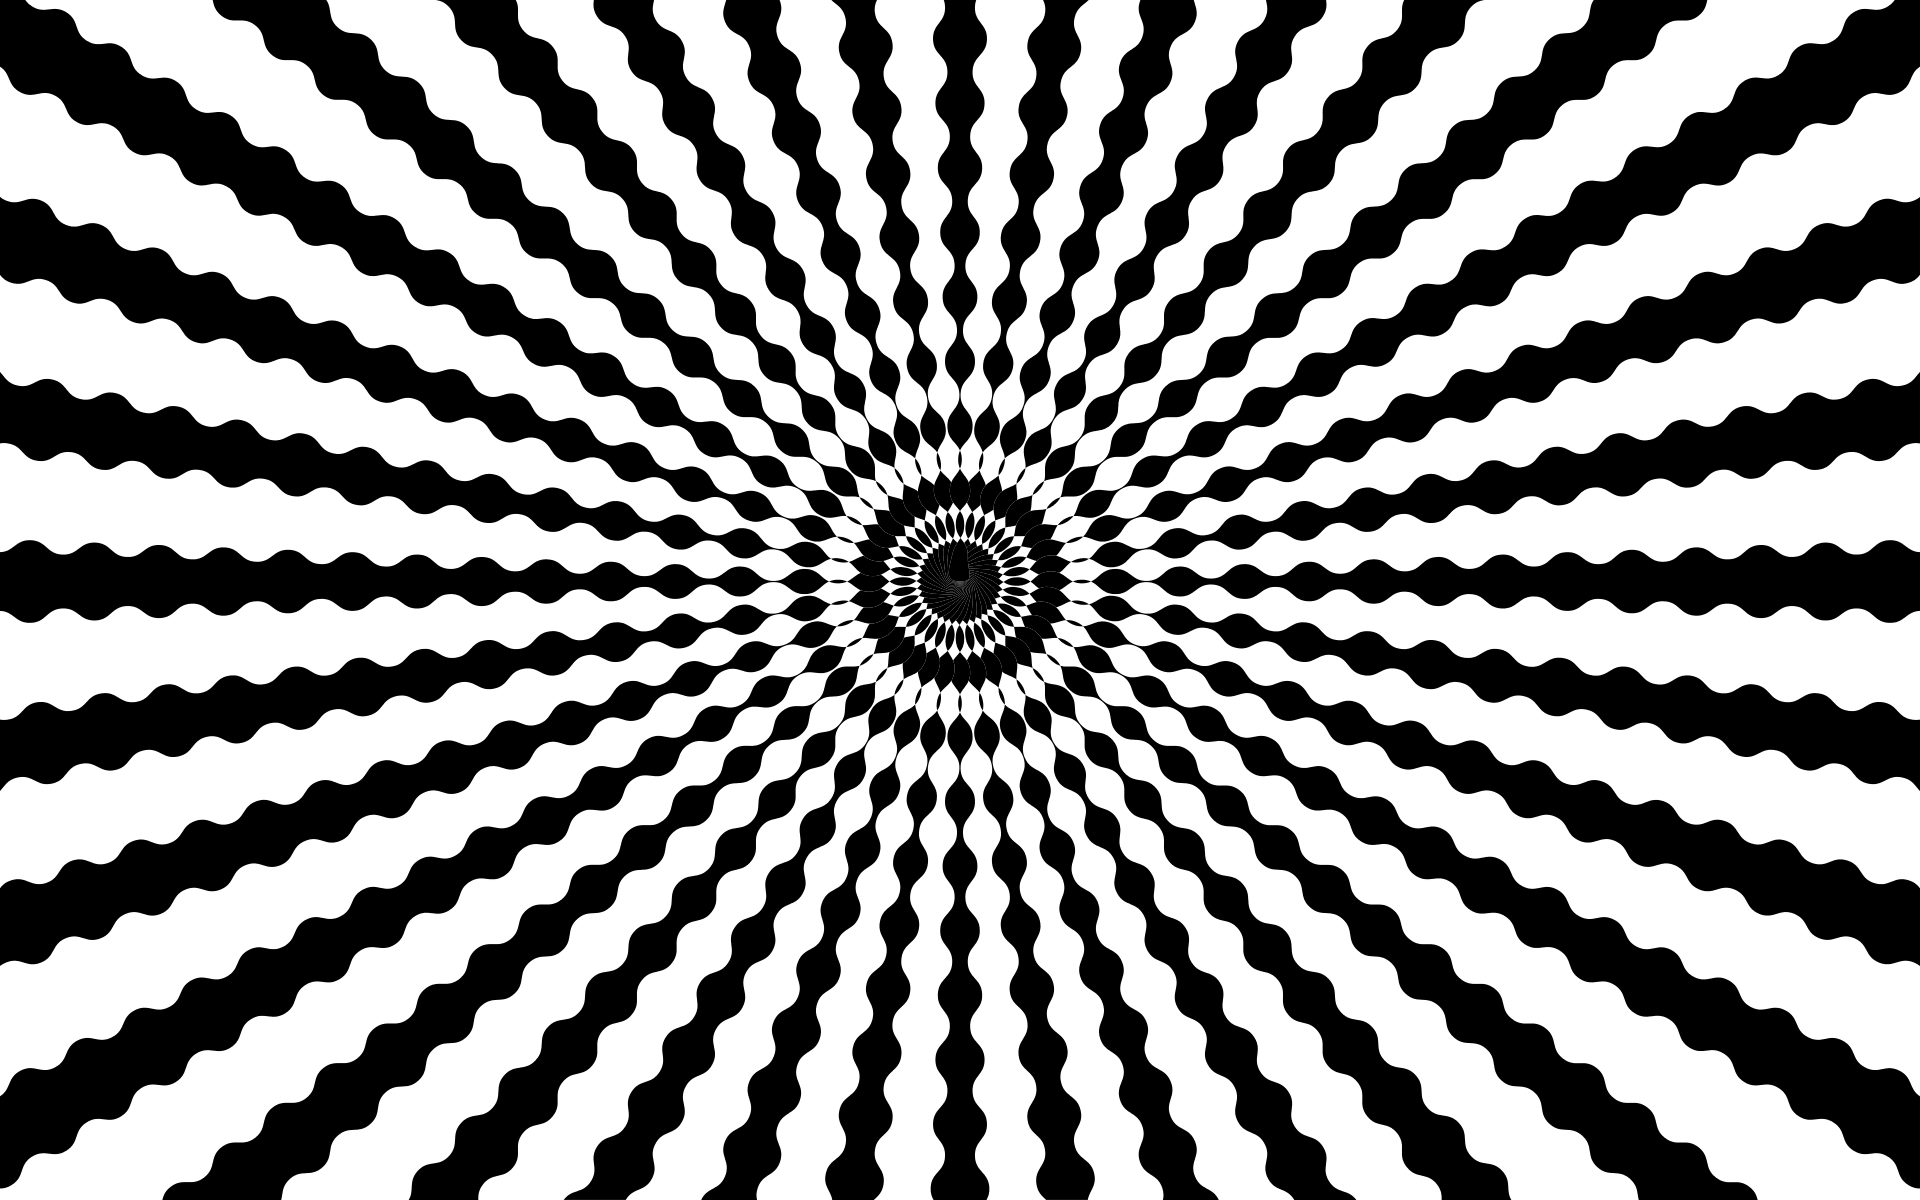 Drawing crafts optical illusion. Understanding perception illusions and